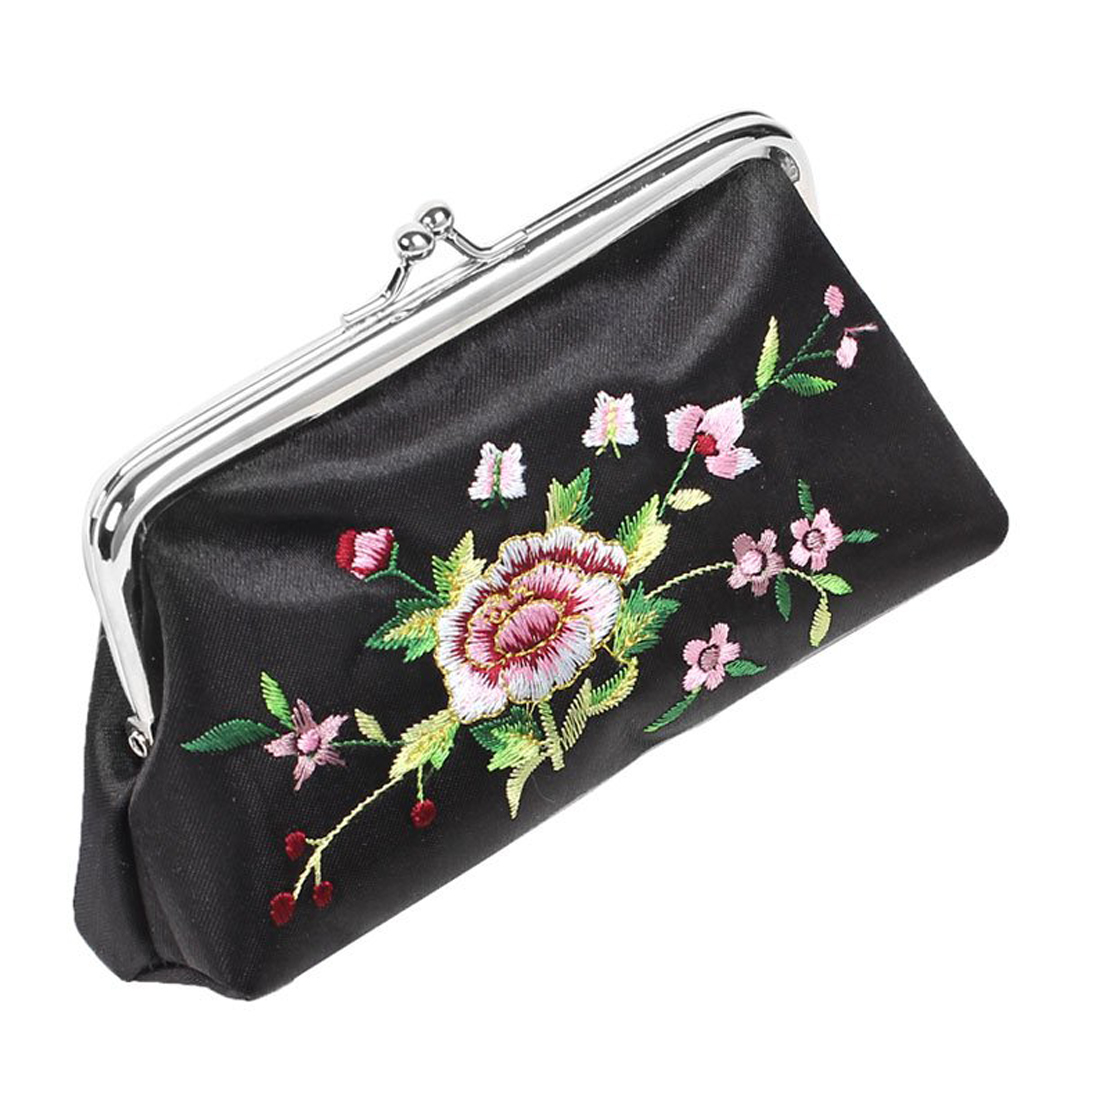 ФОТО 10pcs( ASDS Black Floral Embroidered Wallet Lipstick Holder Case 3 in 1 Set